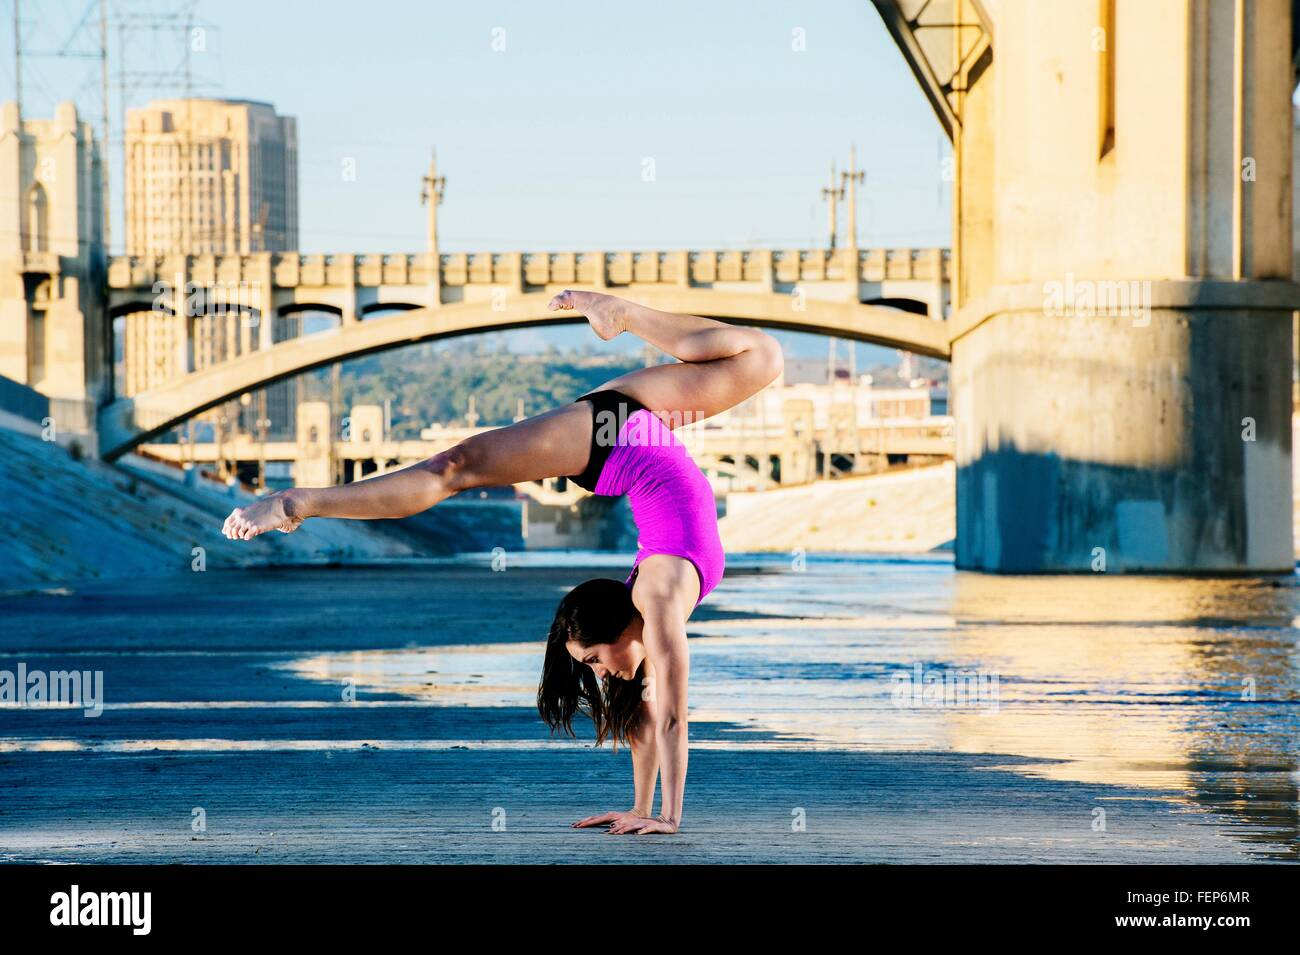 Side view of dancer doing handstand, legs open, Los Angeles, California, USA - Stock Image